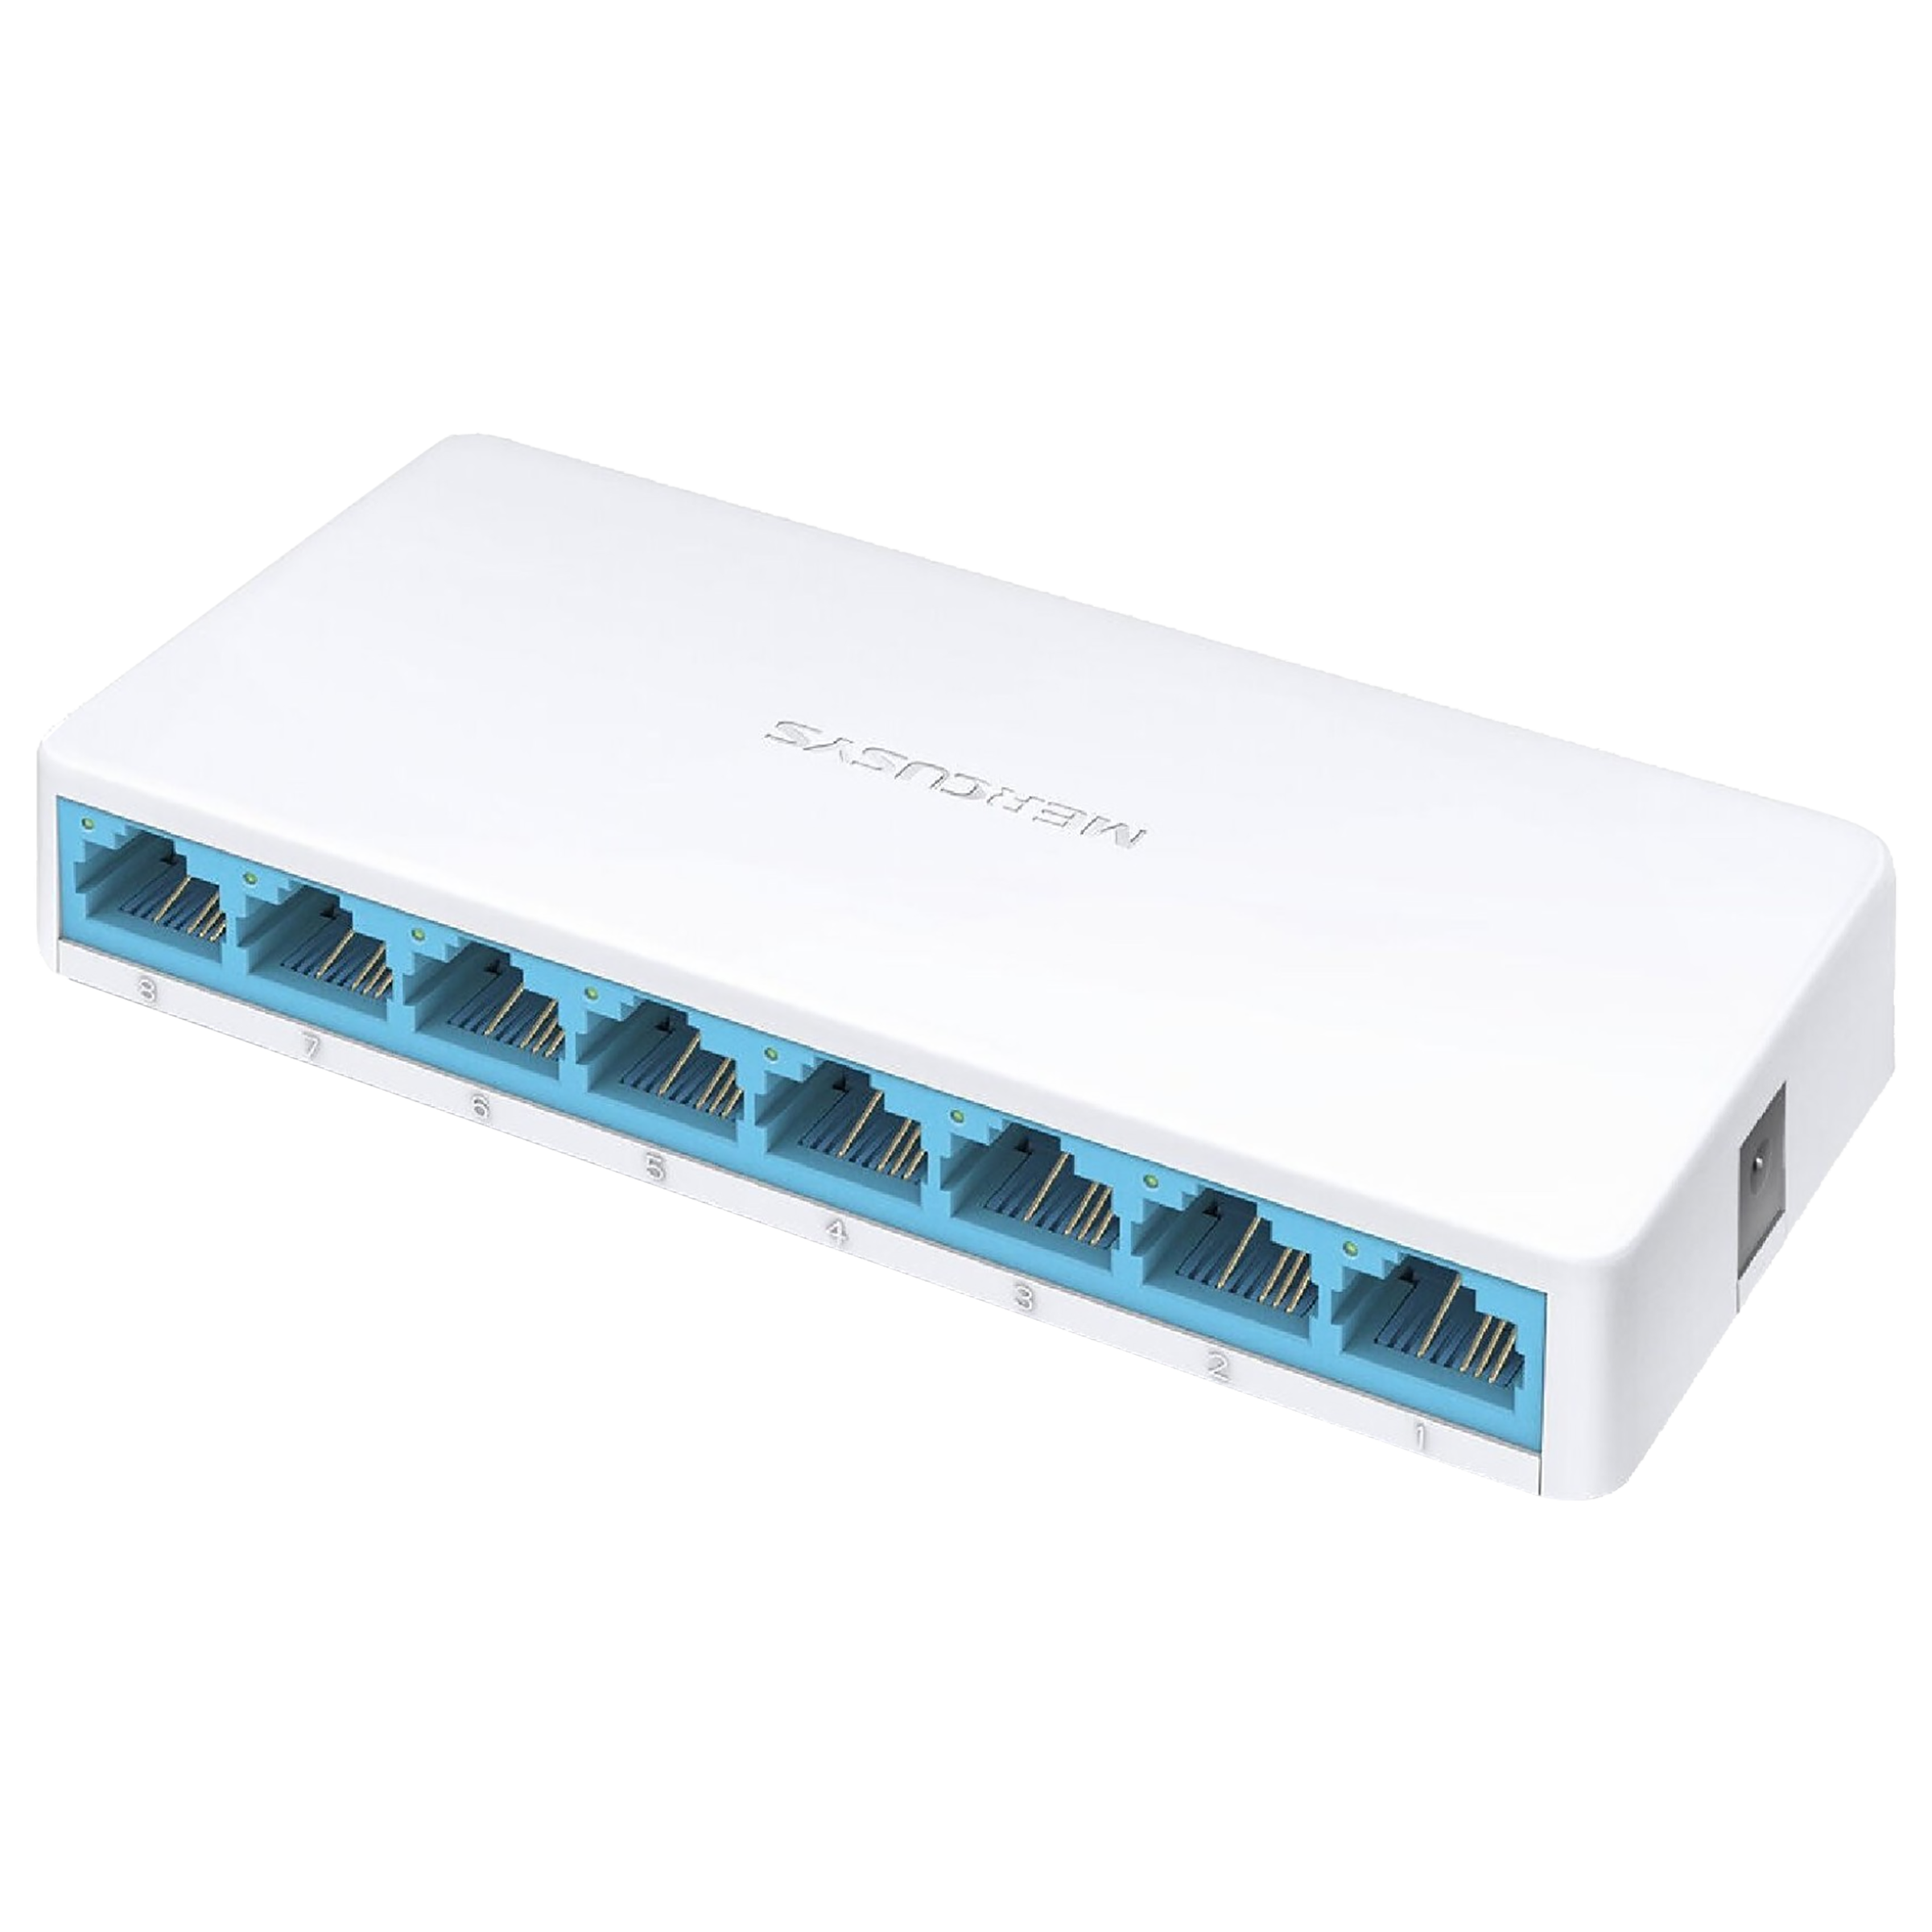 MERCUSYS MS108 8 Ports Switch/Plug (Easily Wired Network Expansion, White)_1